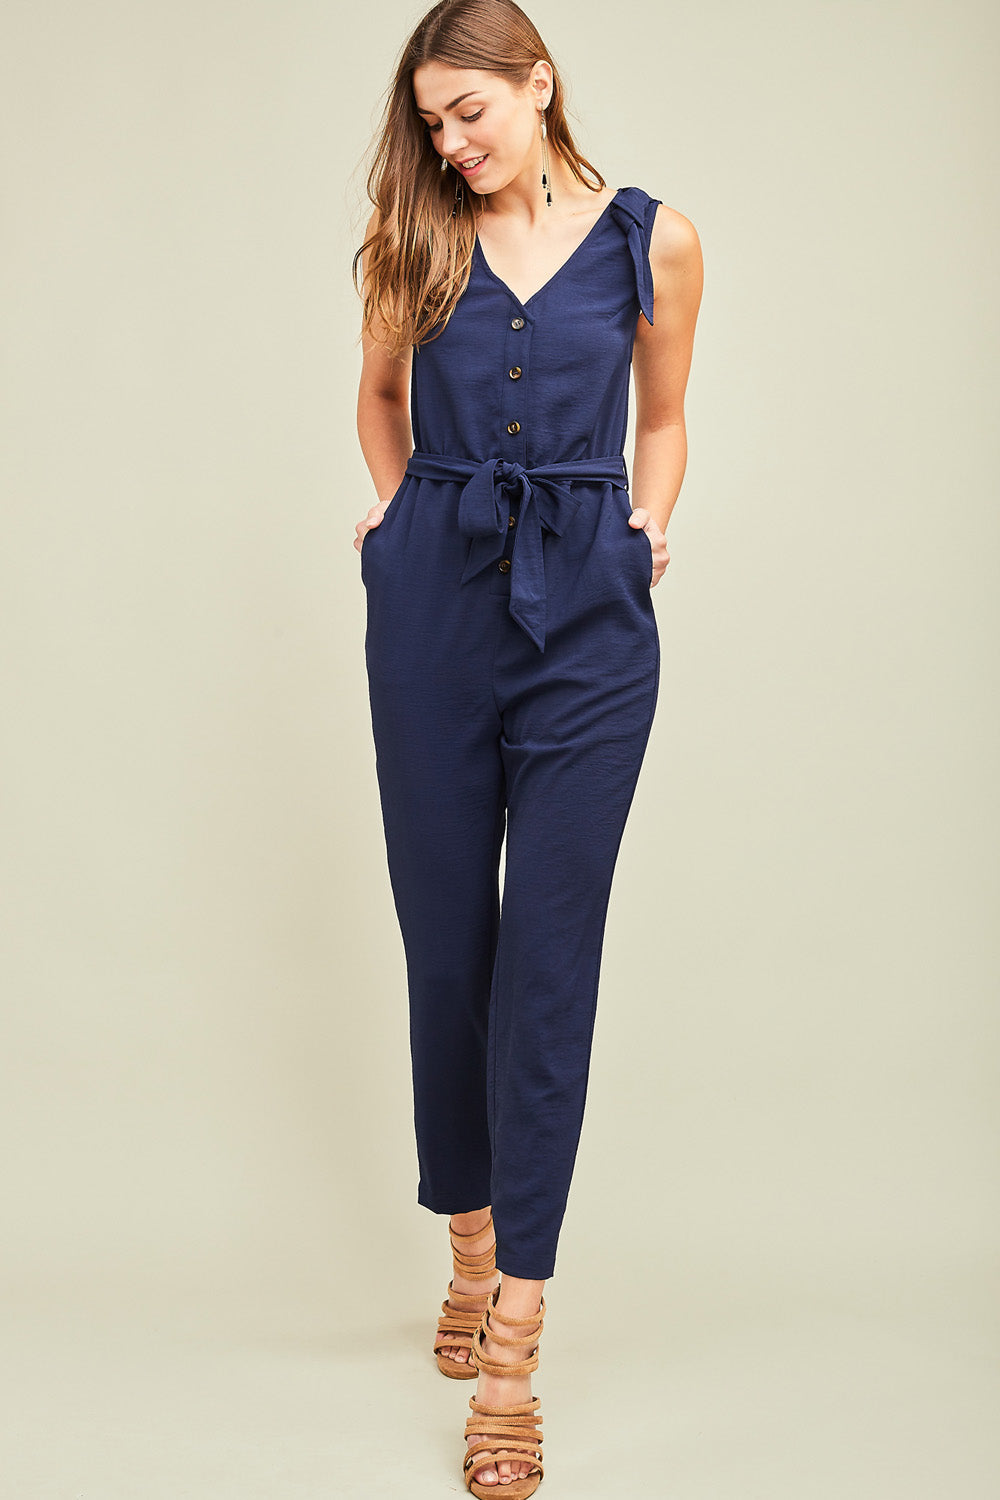 Navy Button-Up Jumpsuit